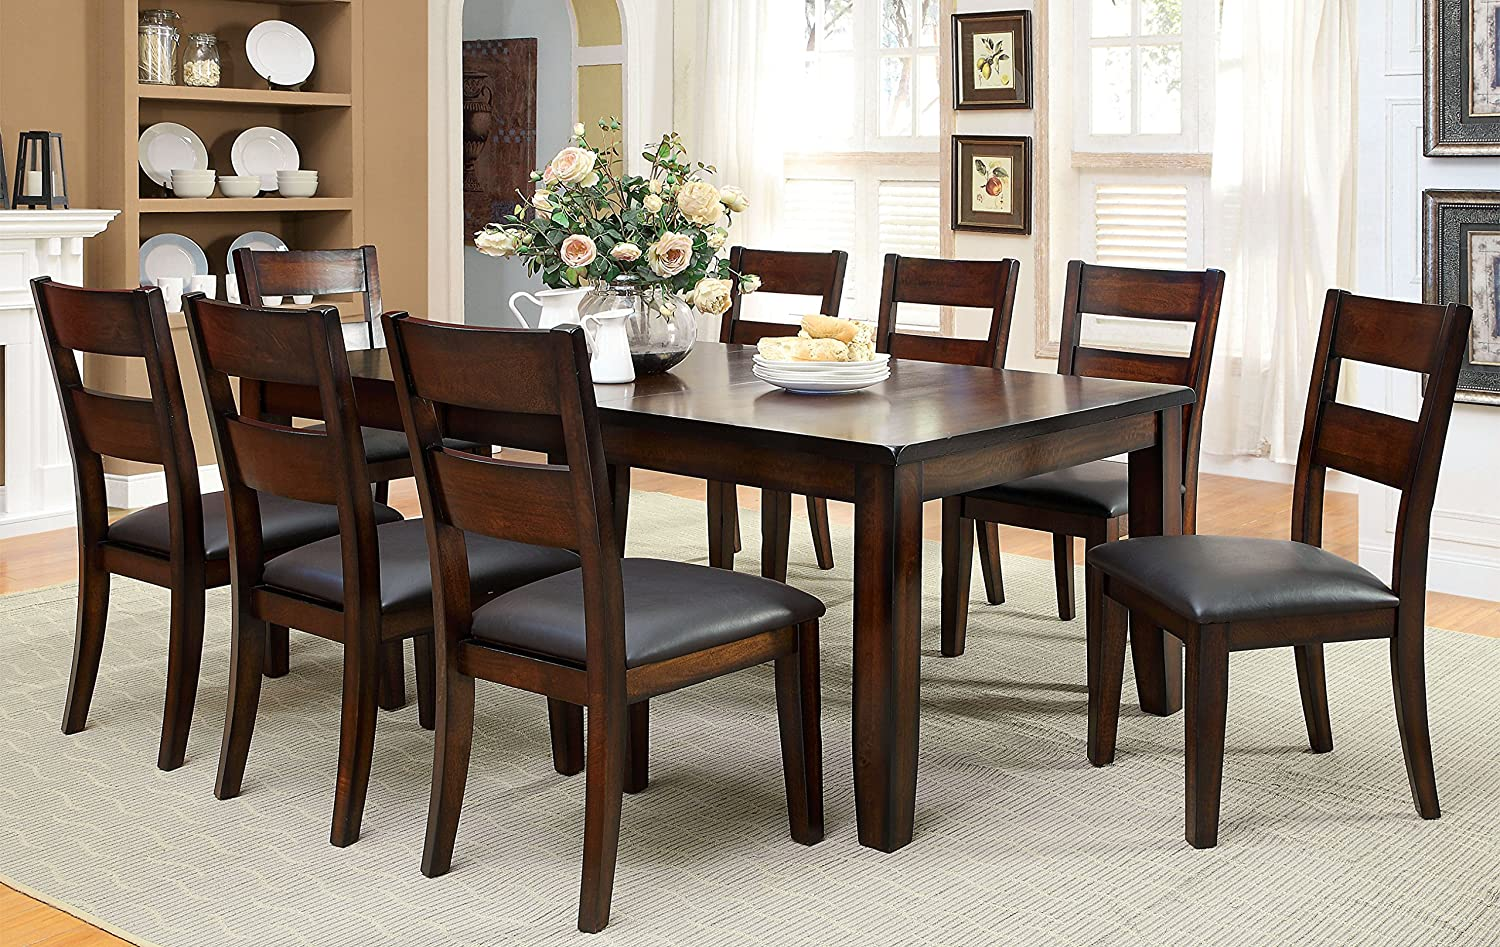 Amazon.com - Furniture of America Dallas 9Piece Transitional Dining ...